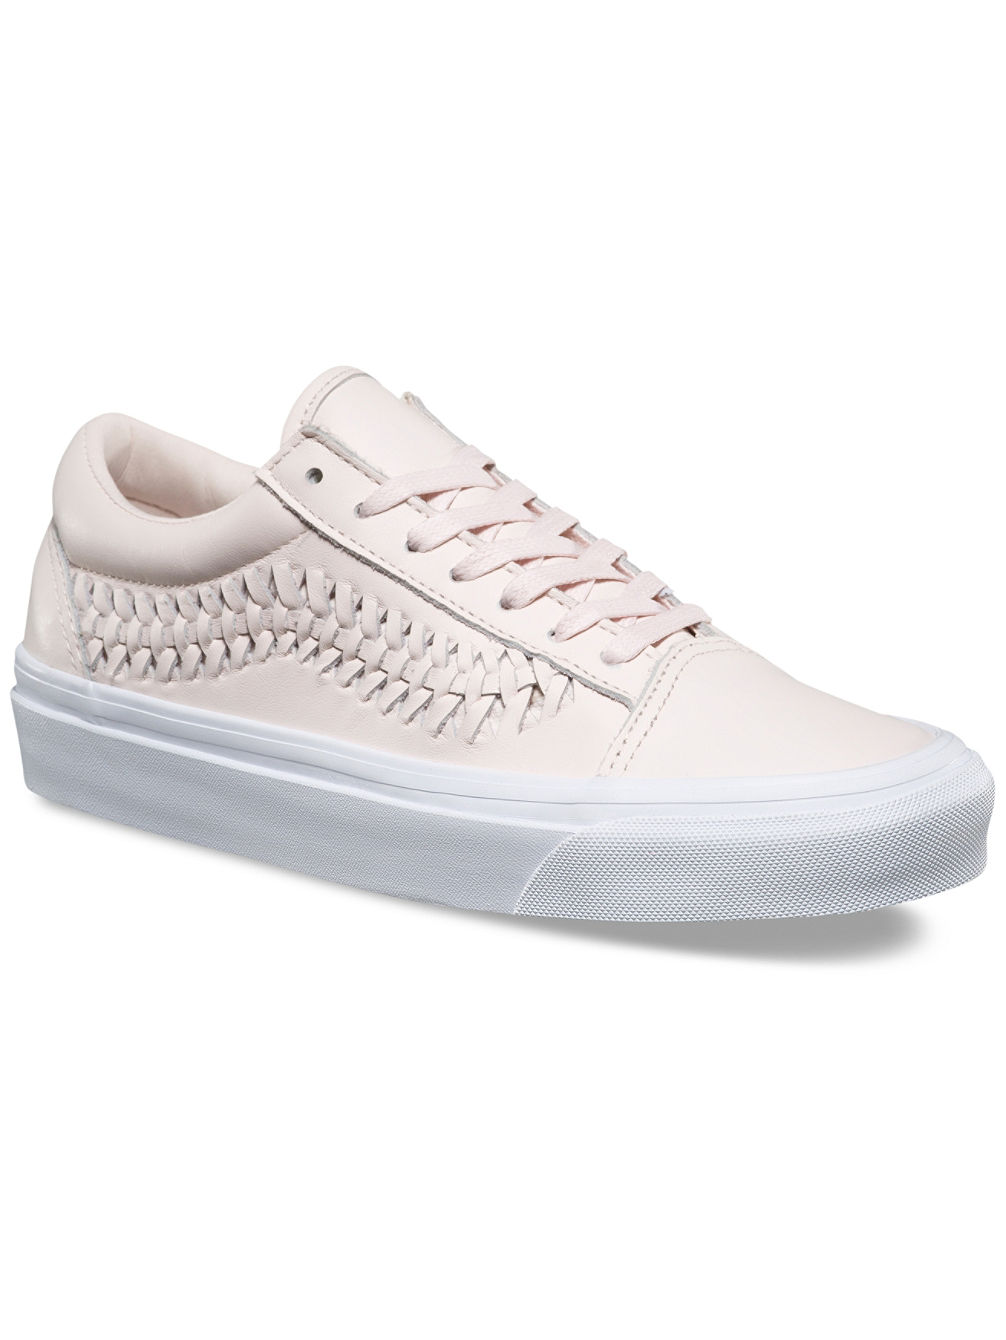 2218a4bd68e559 Buy Vans Leather Old Skool Weave Dx Sneakers online at blue-tomato.com